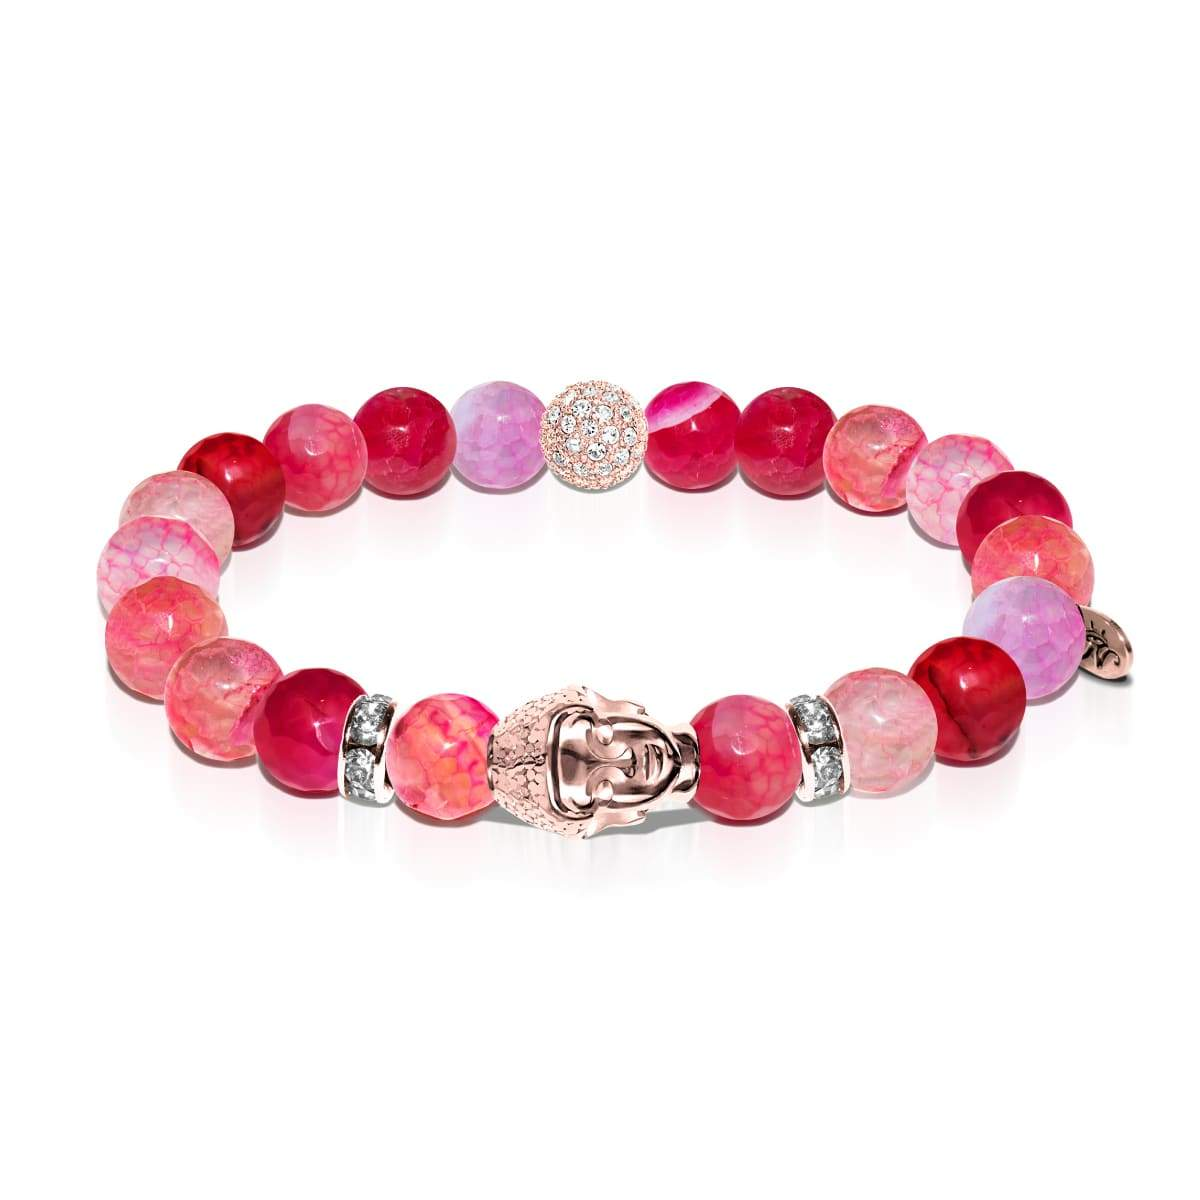 Terma | Bouddha en or rose | Bracelet agate grain de dragon rose